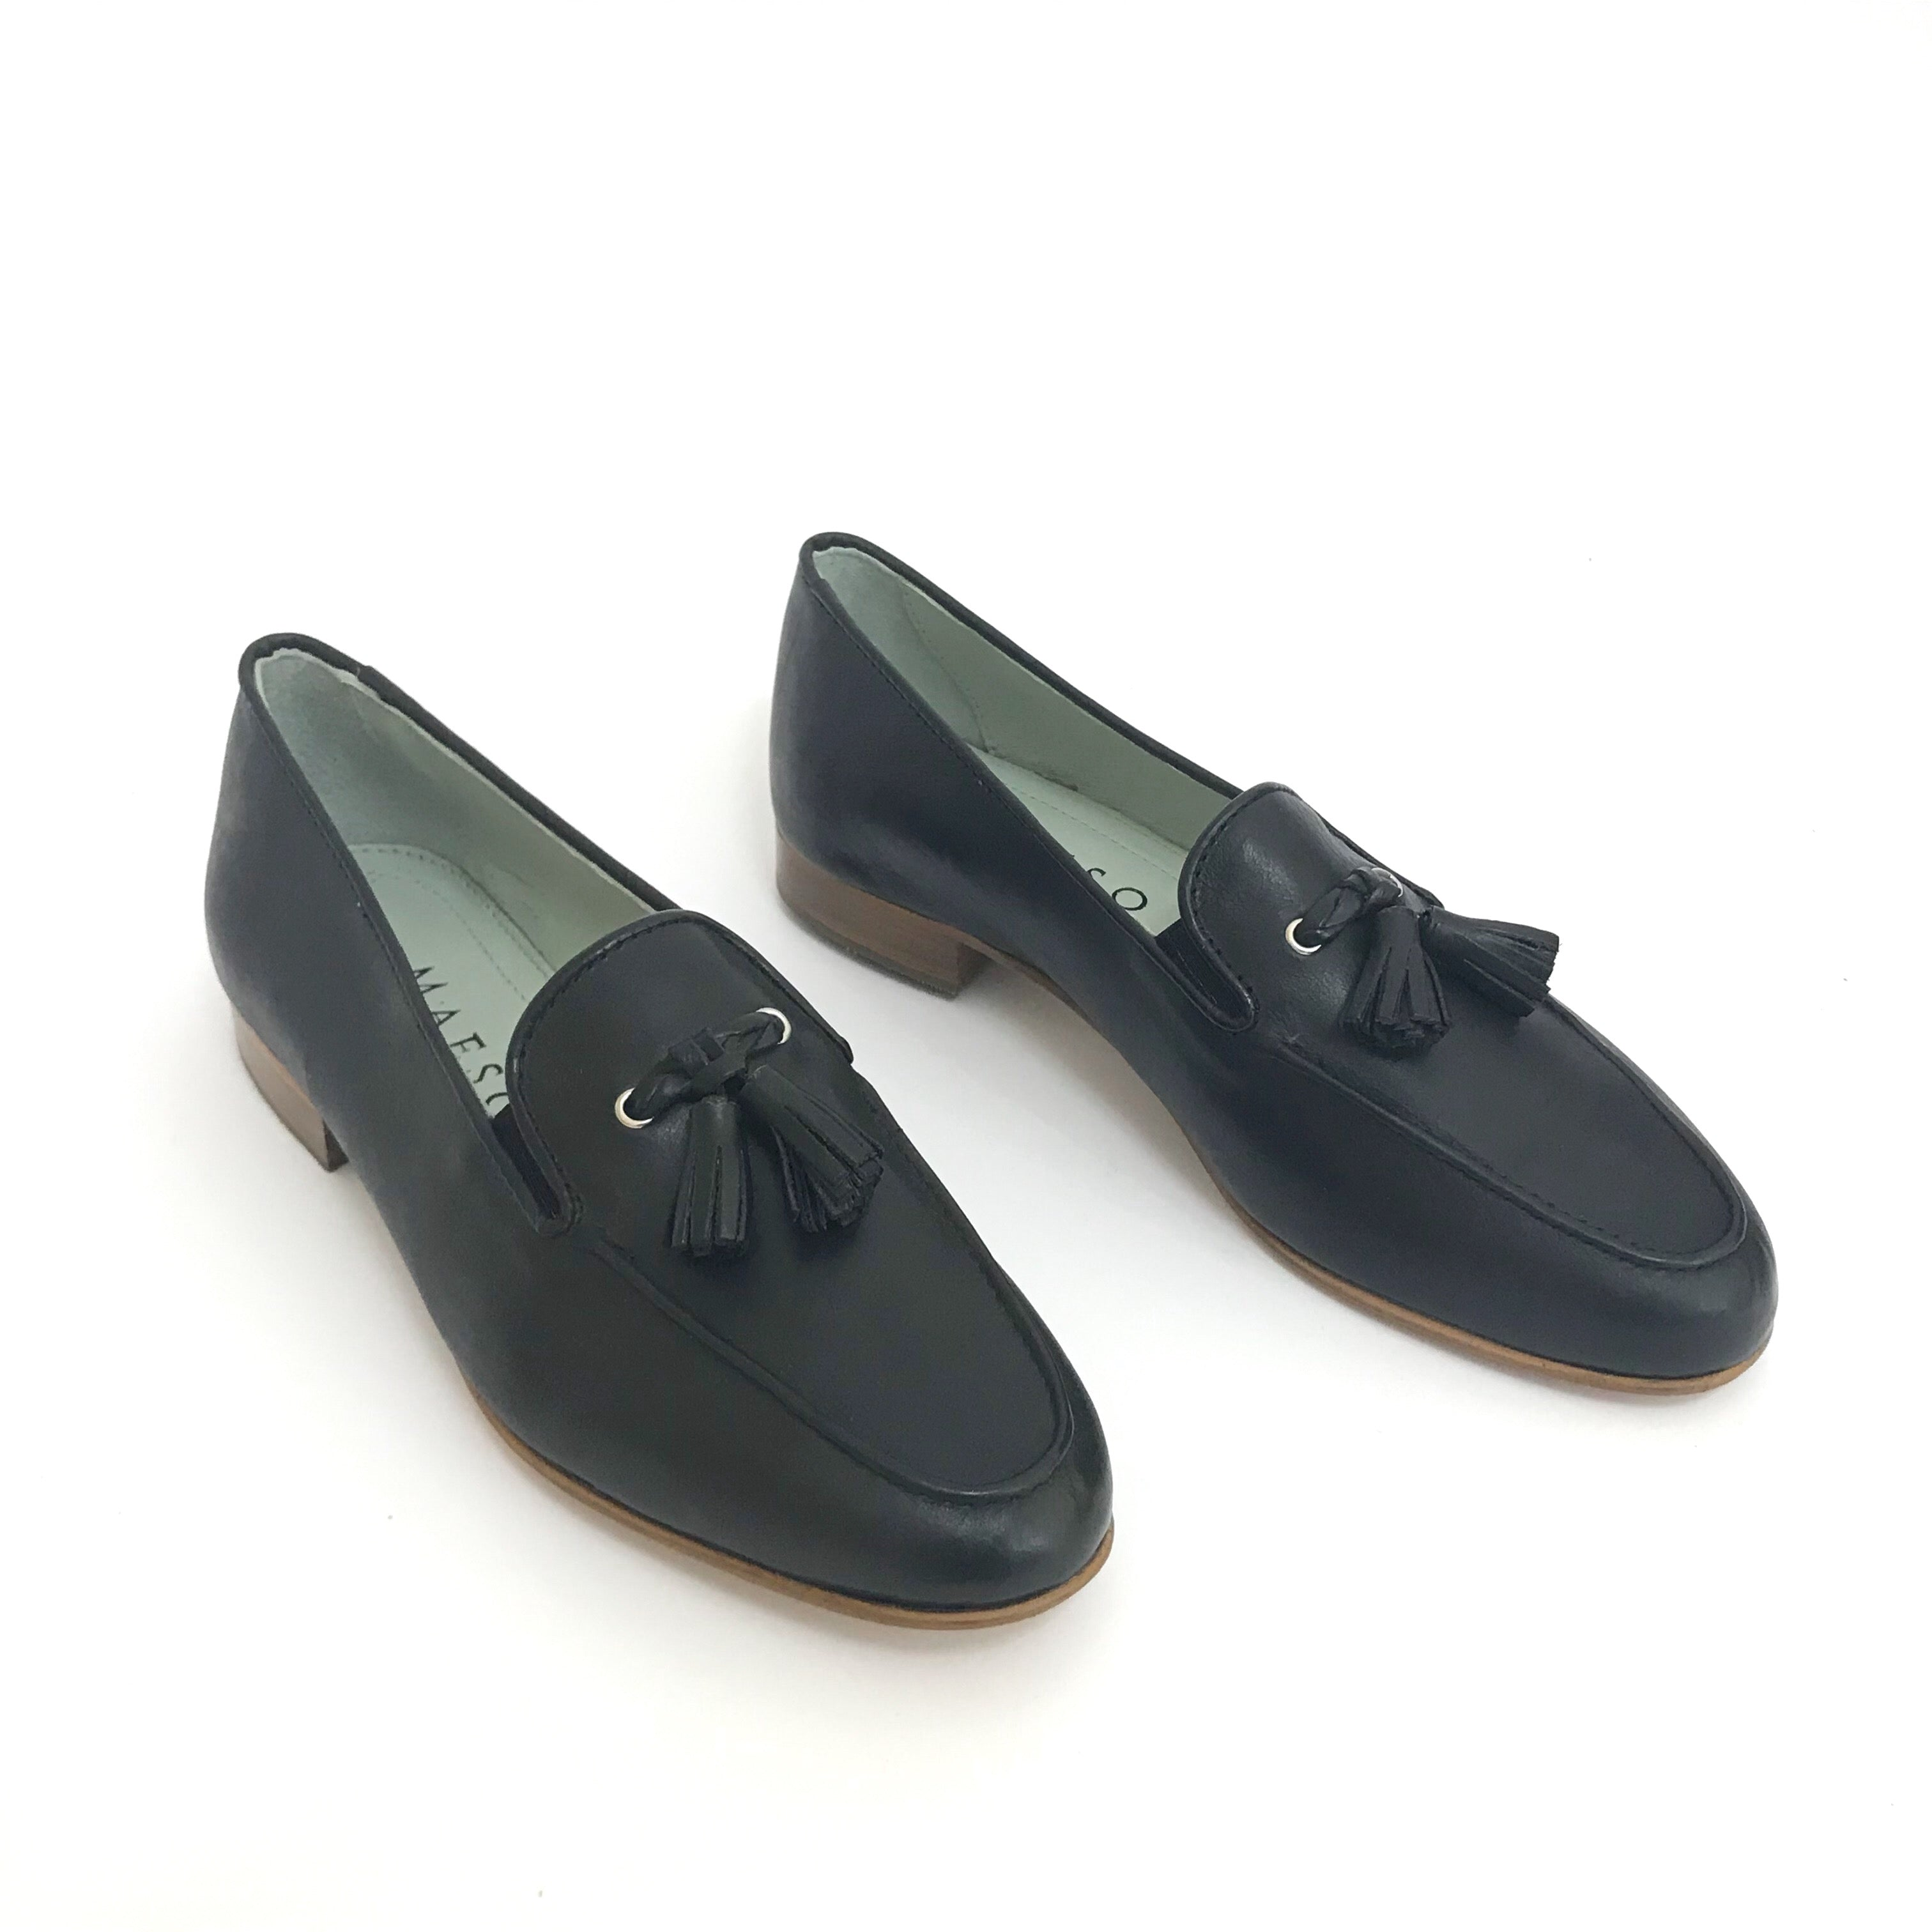 Wide Fit Black Women Italian Comfortable Vegetable Tanned Leather Slip on Loafer Shoe